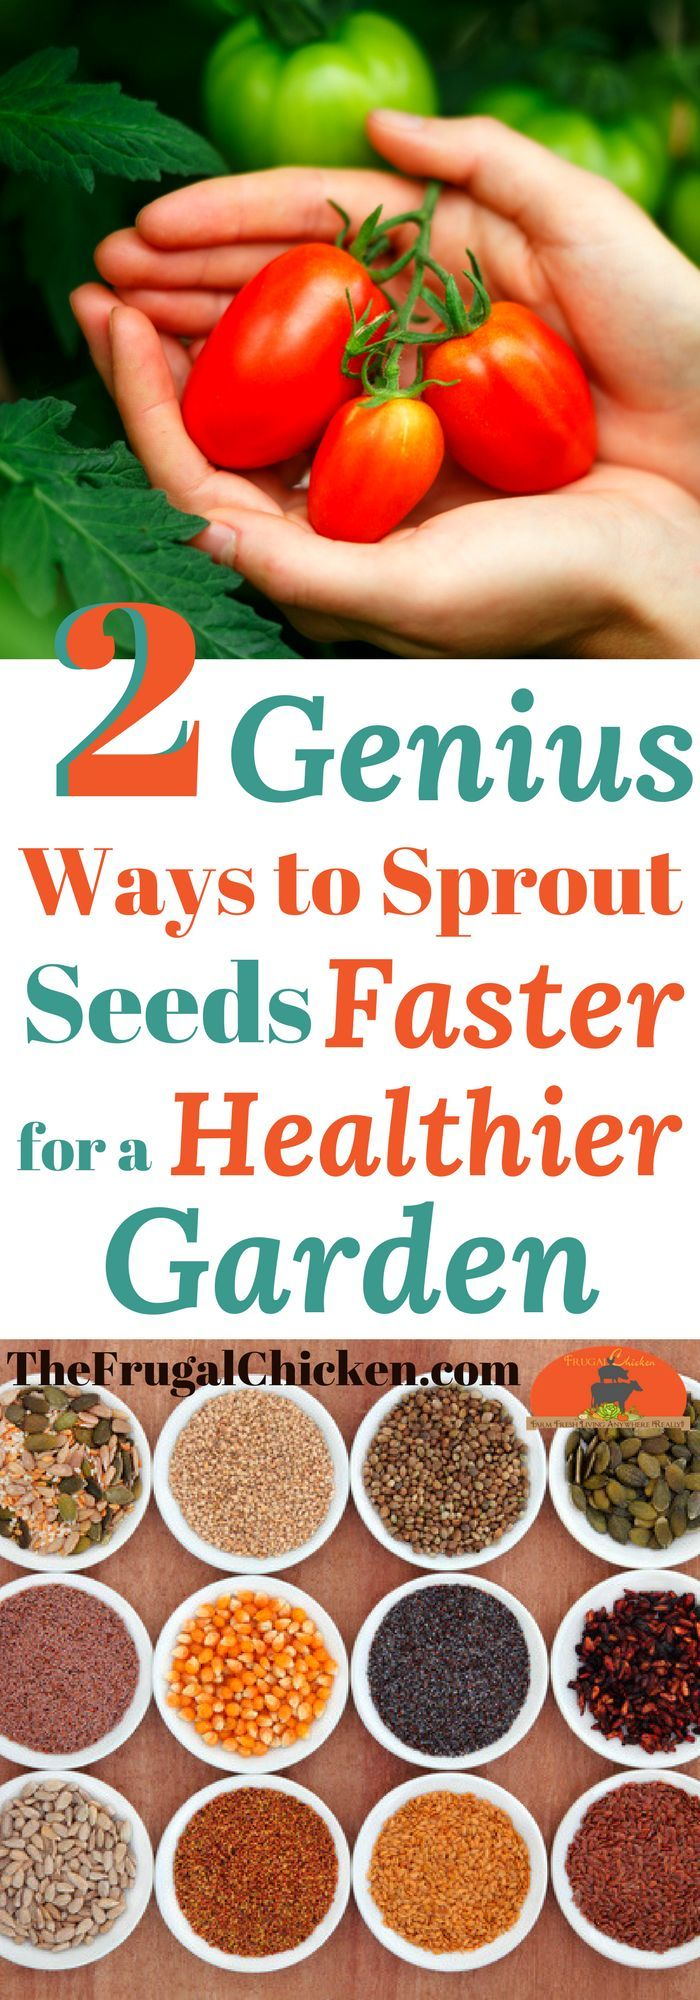 Want a bigger harvest, faster and with less work? We tired these 2 genius garden hacks!